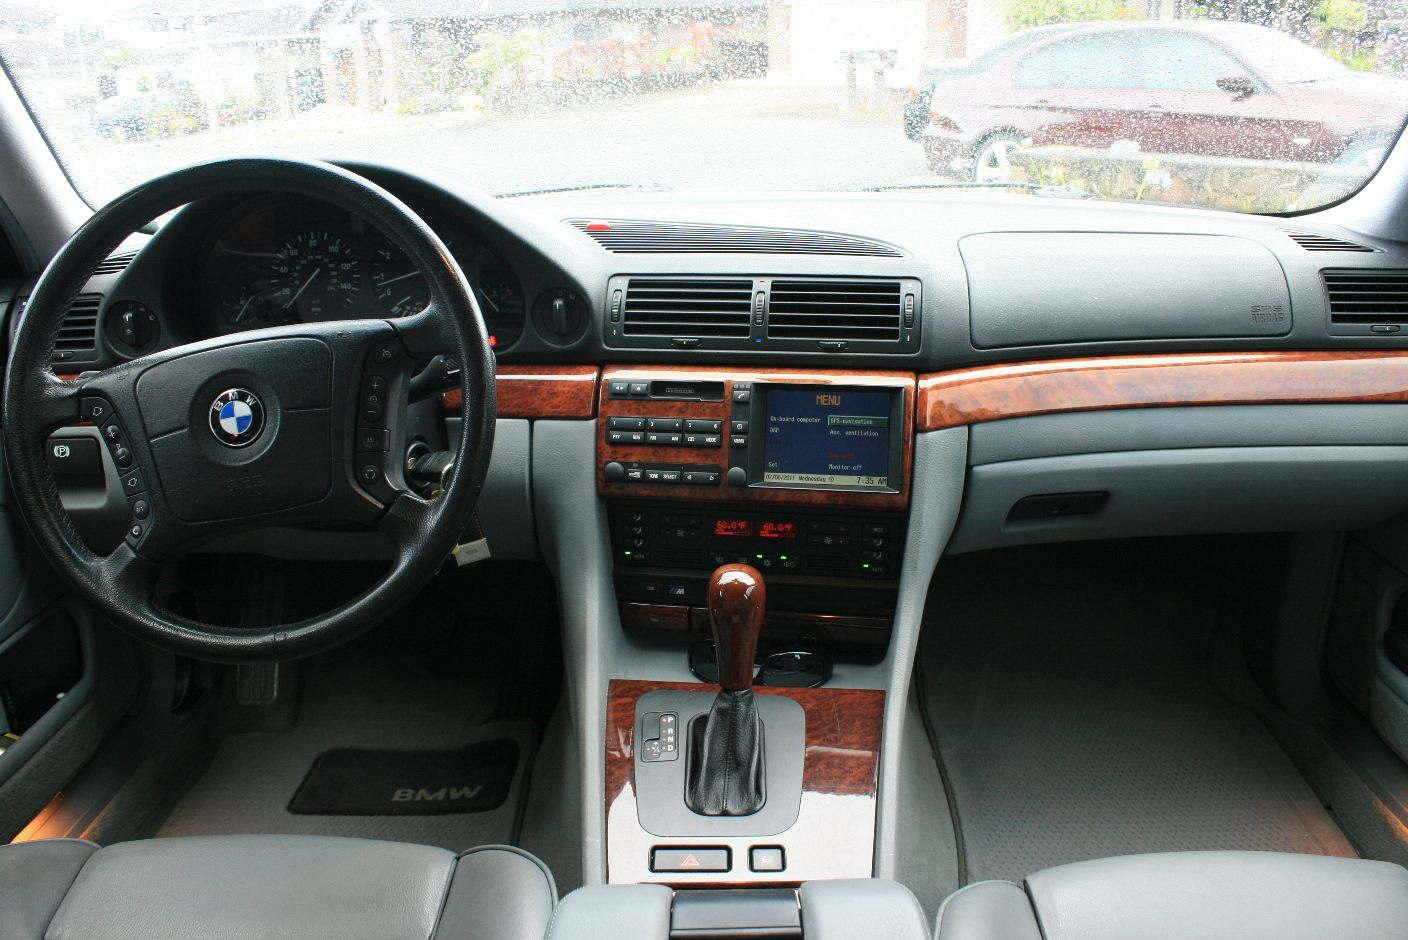 hight resolution of 2000 bmw 740i sport interior dashboard